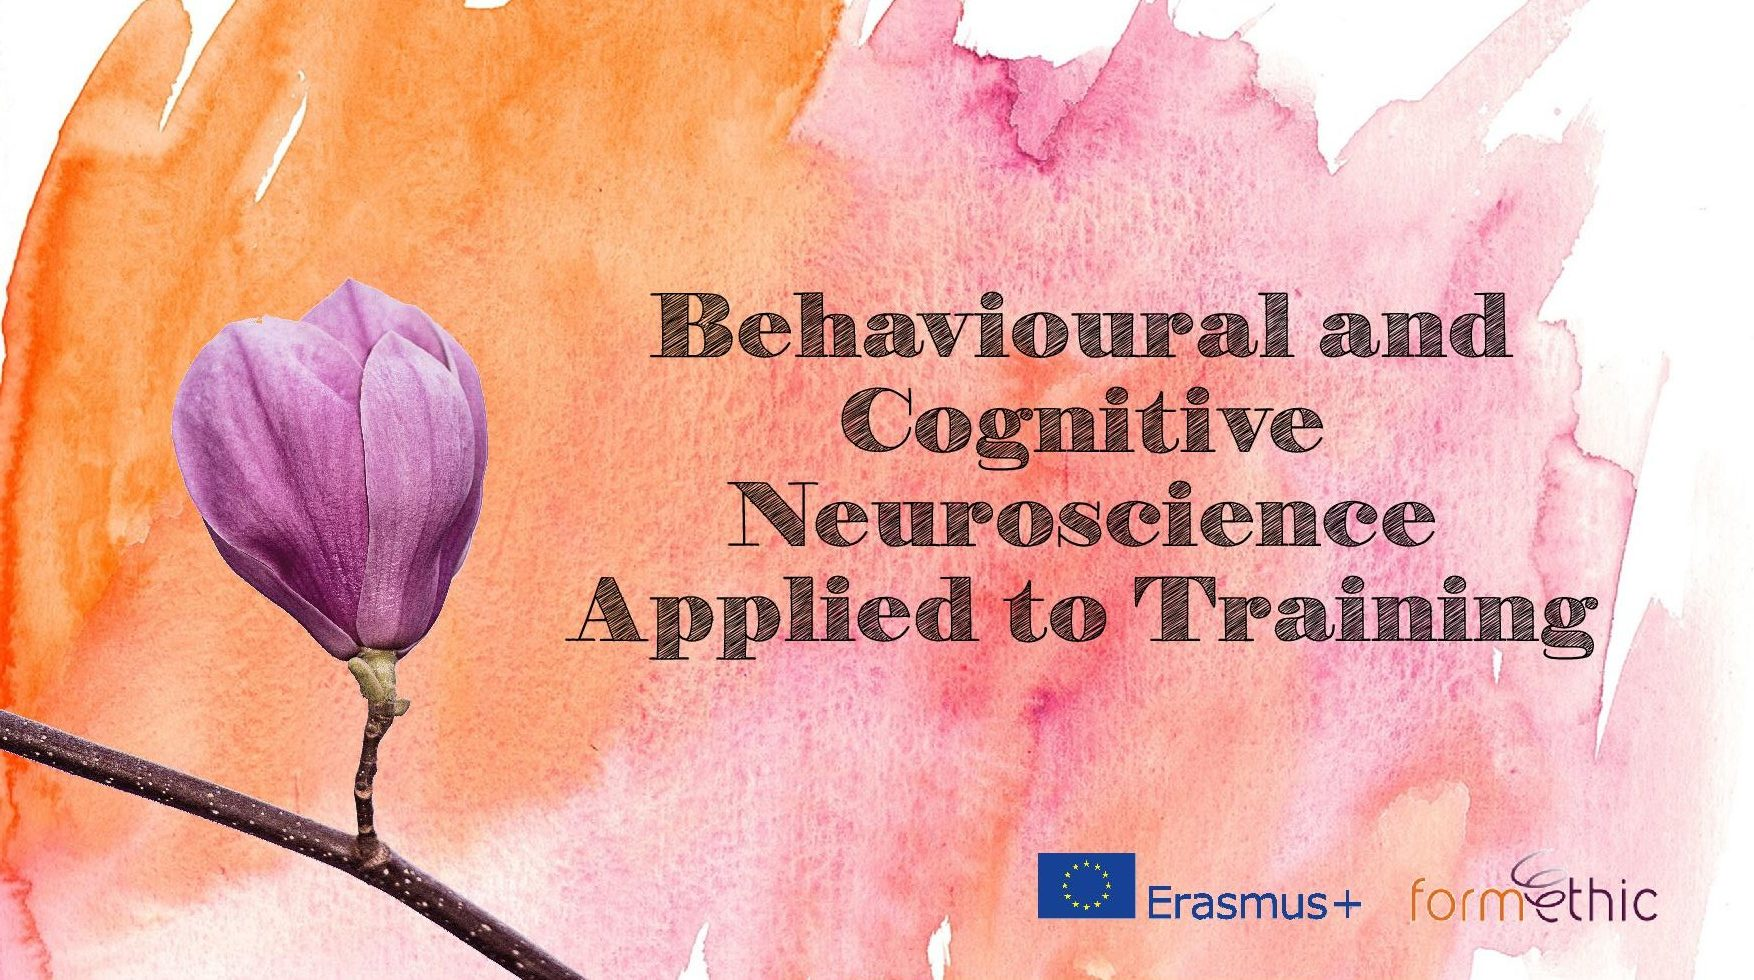 Behavioural and Cognitive Neuroscience Applied to Training